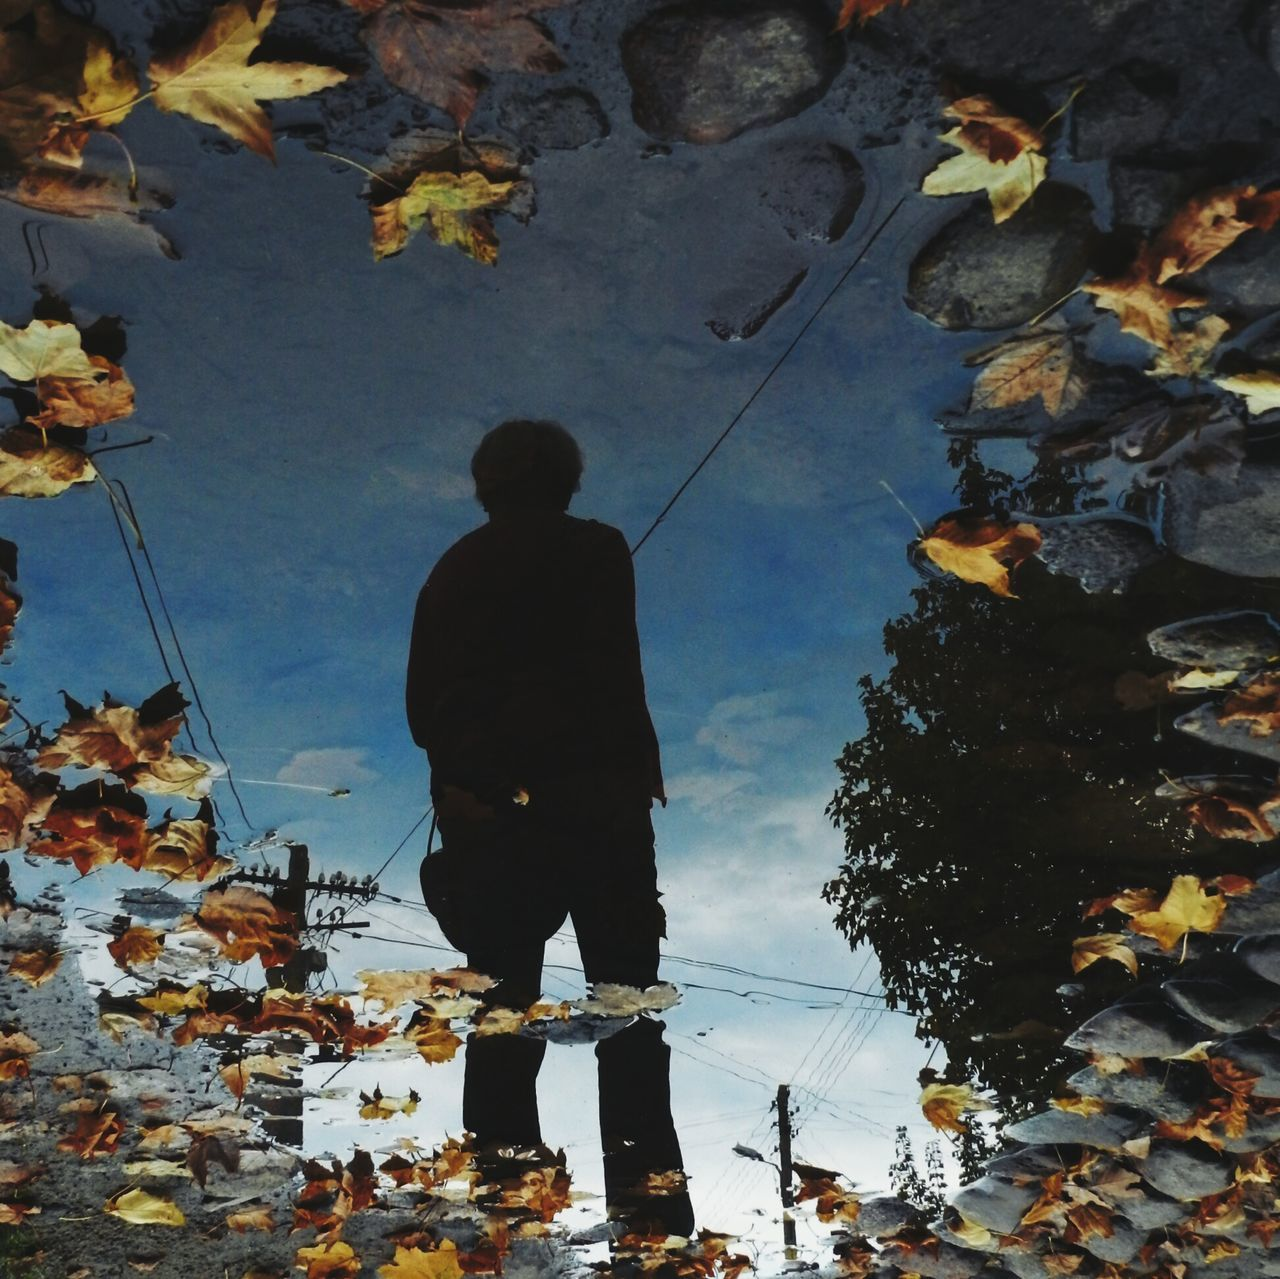 Reflection Of Man In Puddle At Dusk